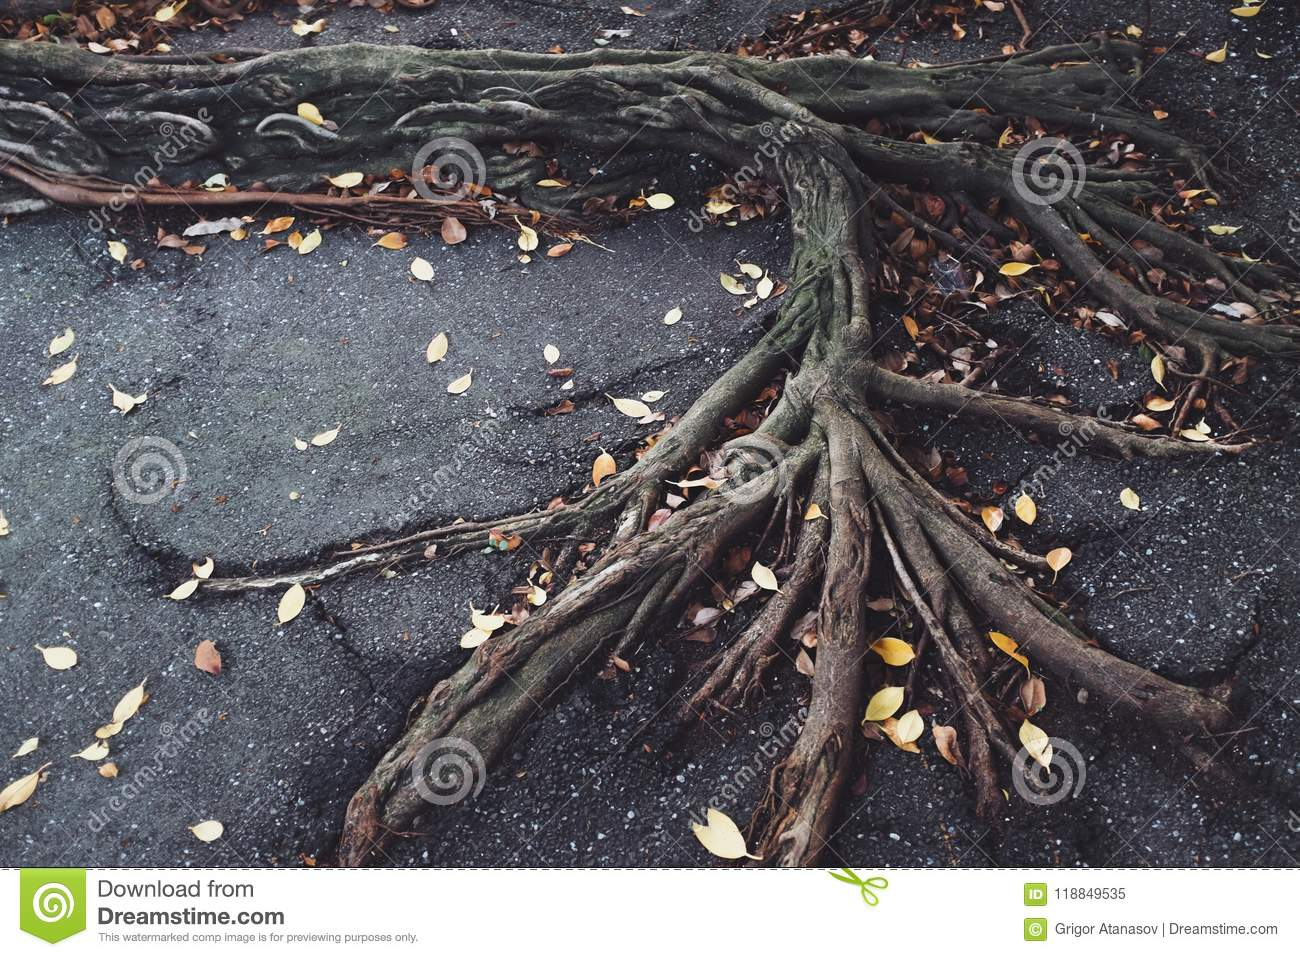 Roots on pavement